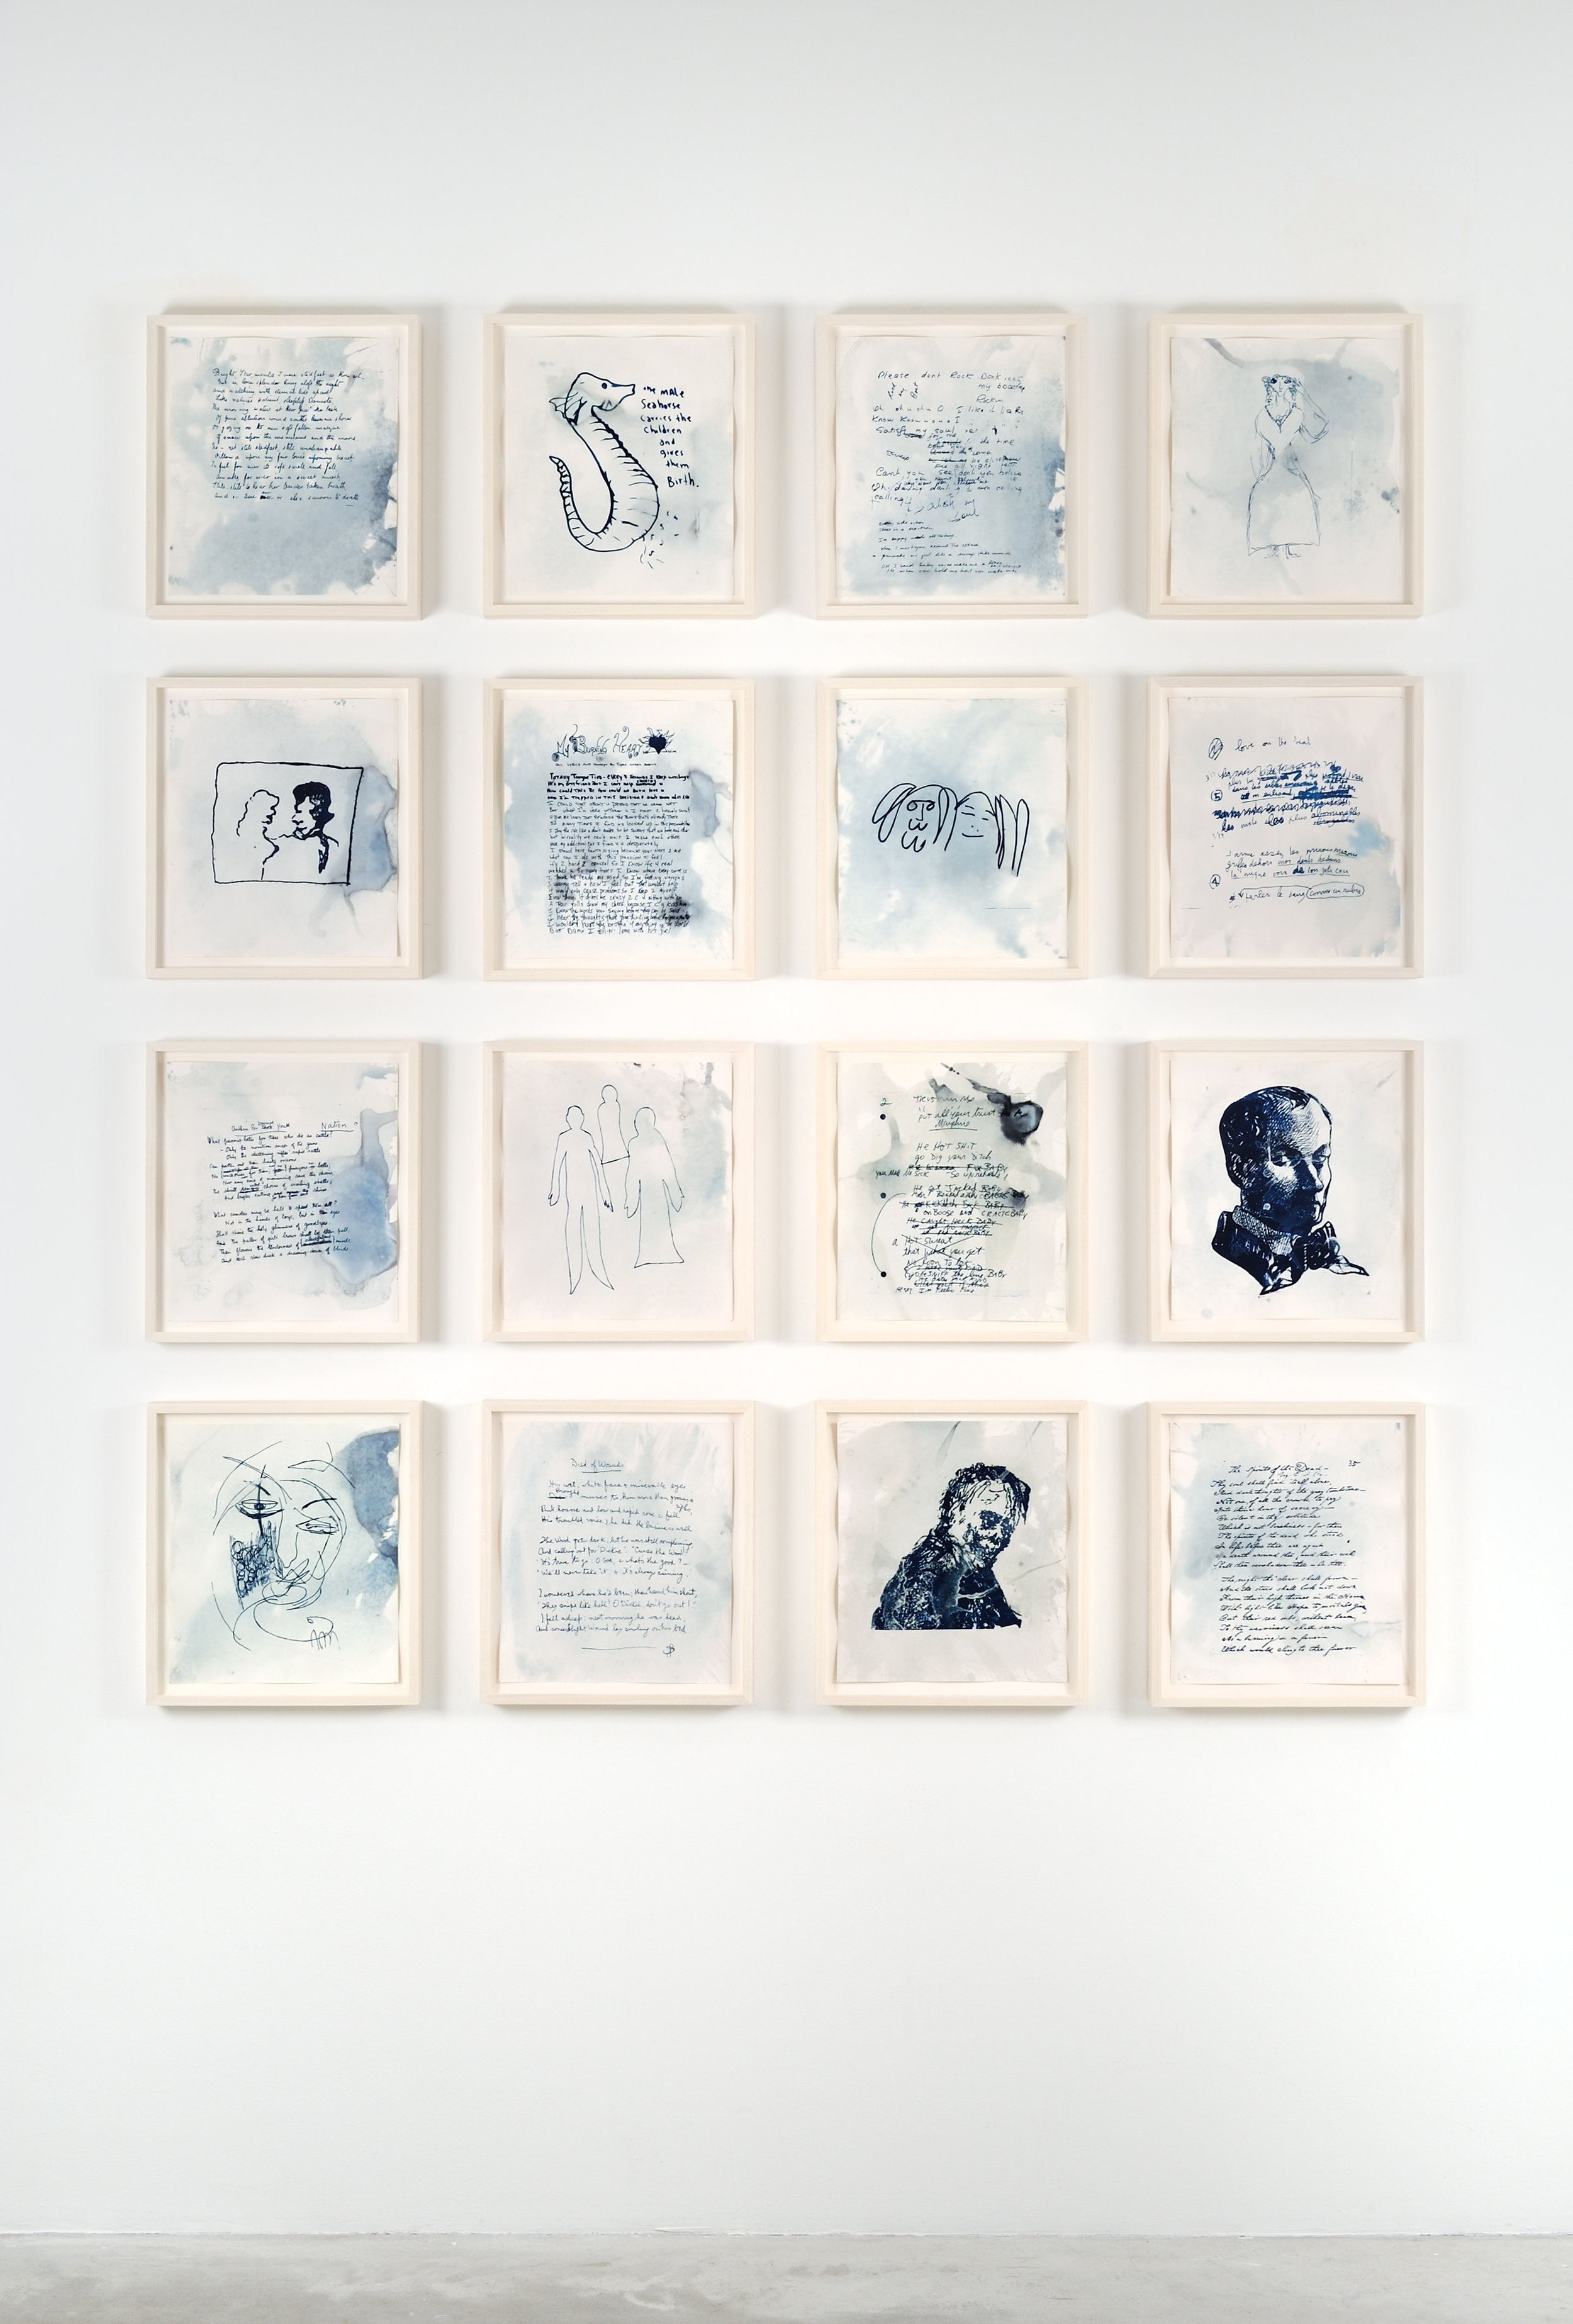 Life, Left to Struggle in The Sun, 2012 16 cyanotypes, ghost images of original drawings, handwritten lyrics, and poems by now deceased writers, pop stars and poets, sunlight, chlorophyll, ocean water, watercolor paper 38 x 34,3 cm - 15 x 13 1/2 inches (framed) (each)